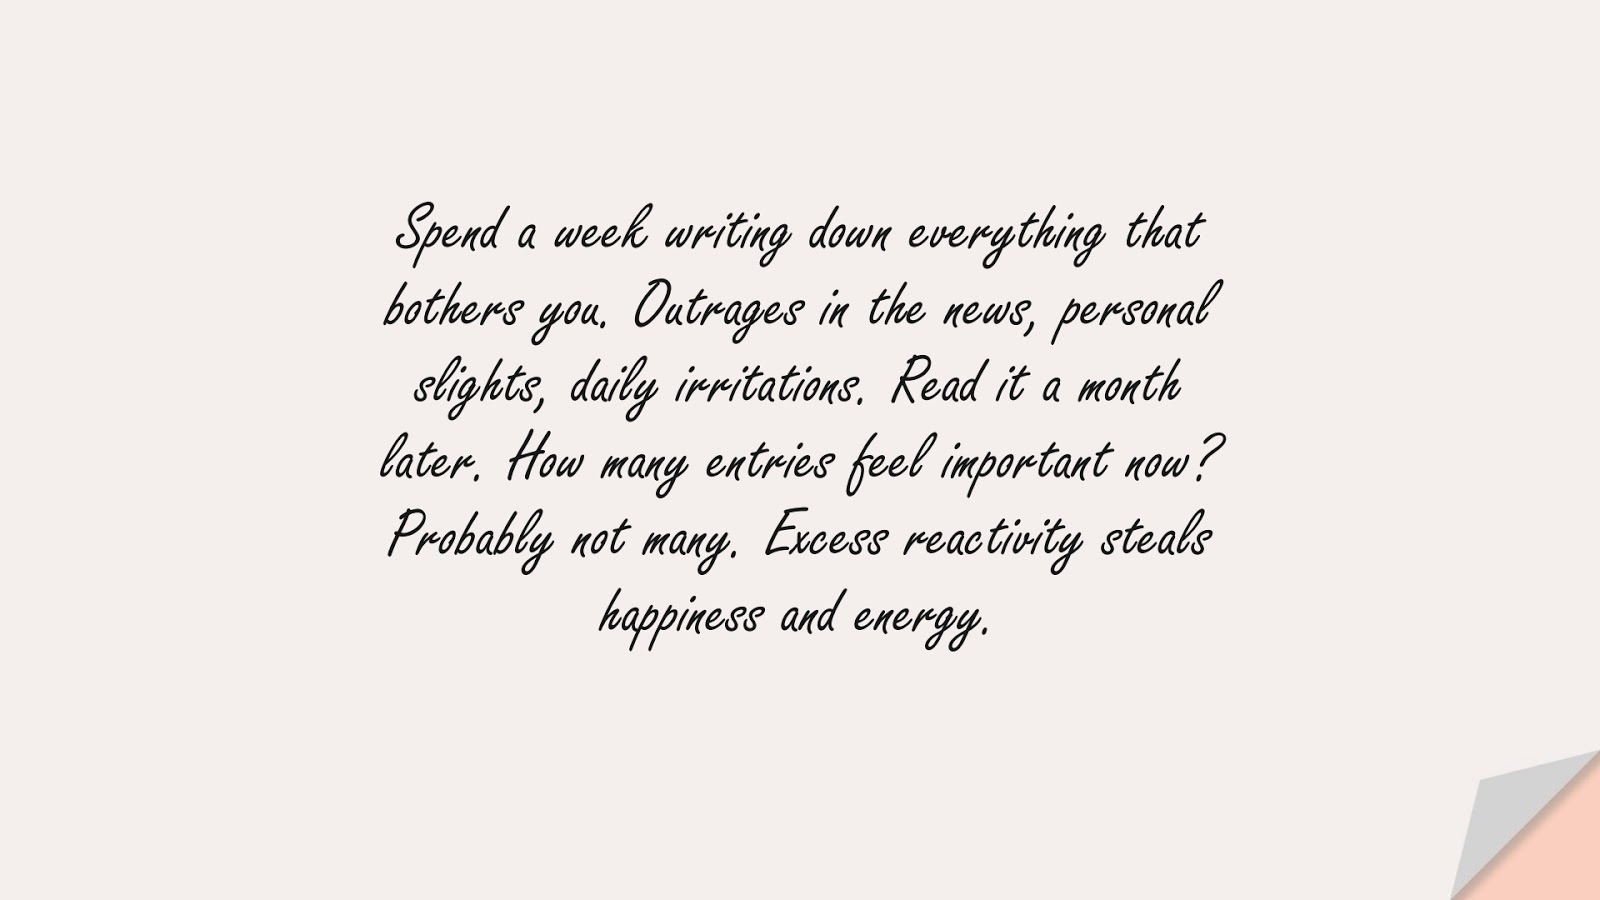 Spend a week writing down everything that bothers you. Outrages in the news, personal slights, daily irritations. Read it a month later. How many entries feel important now? Probably not many. Excess reactivity steals happiness and energy.FALSE